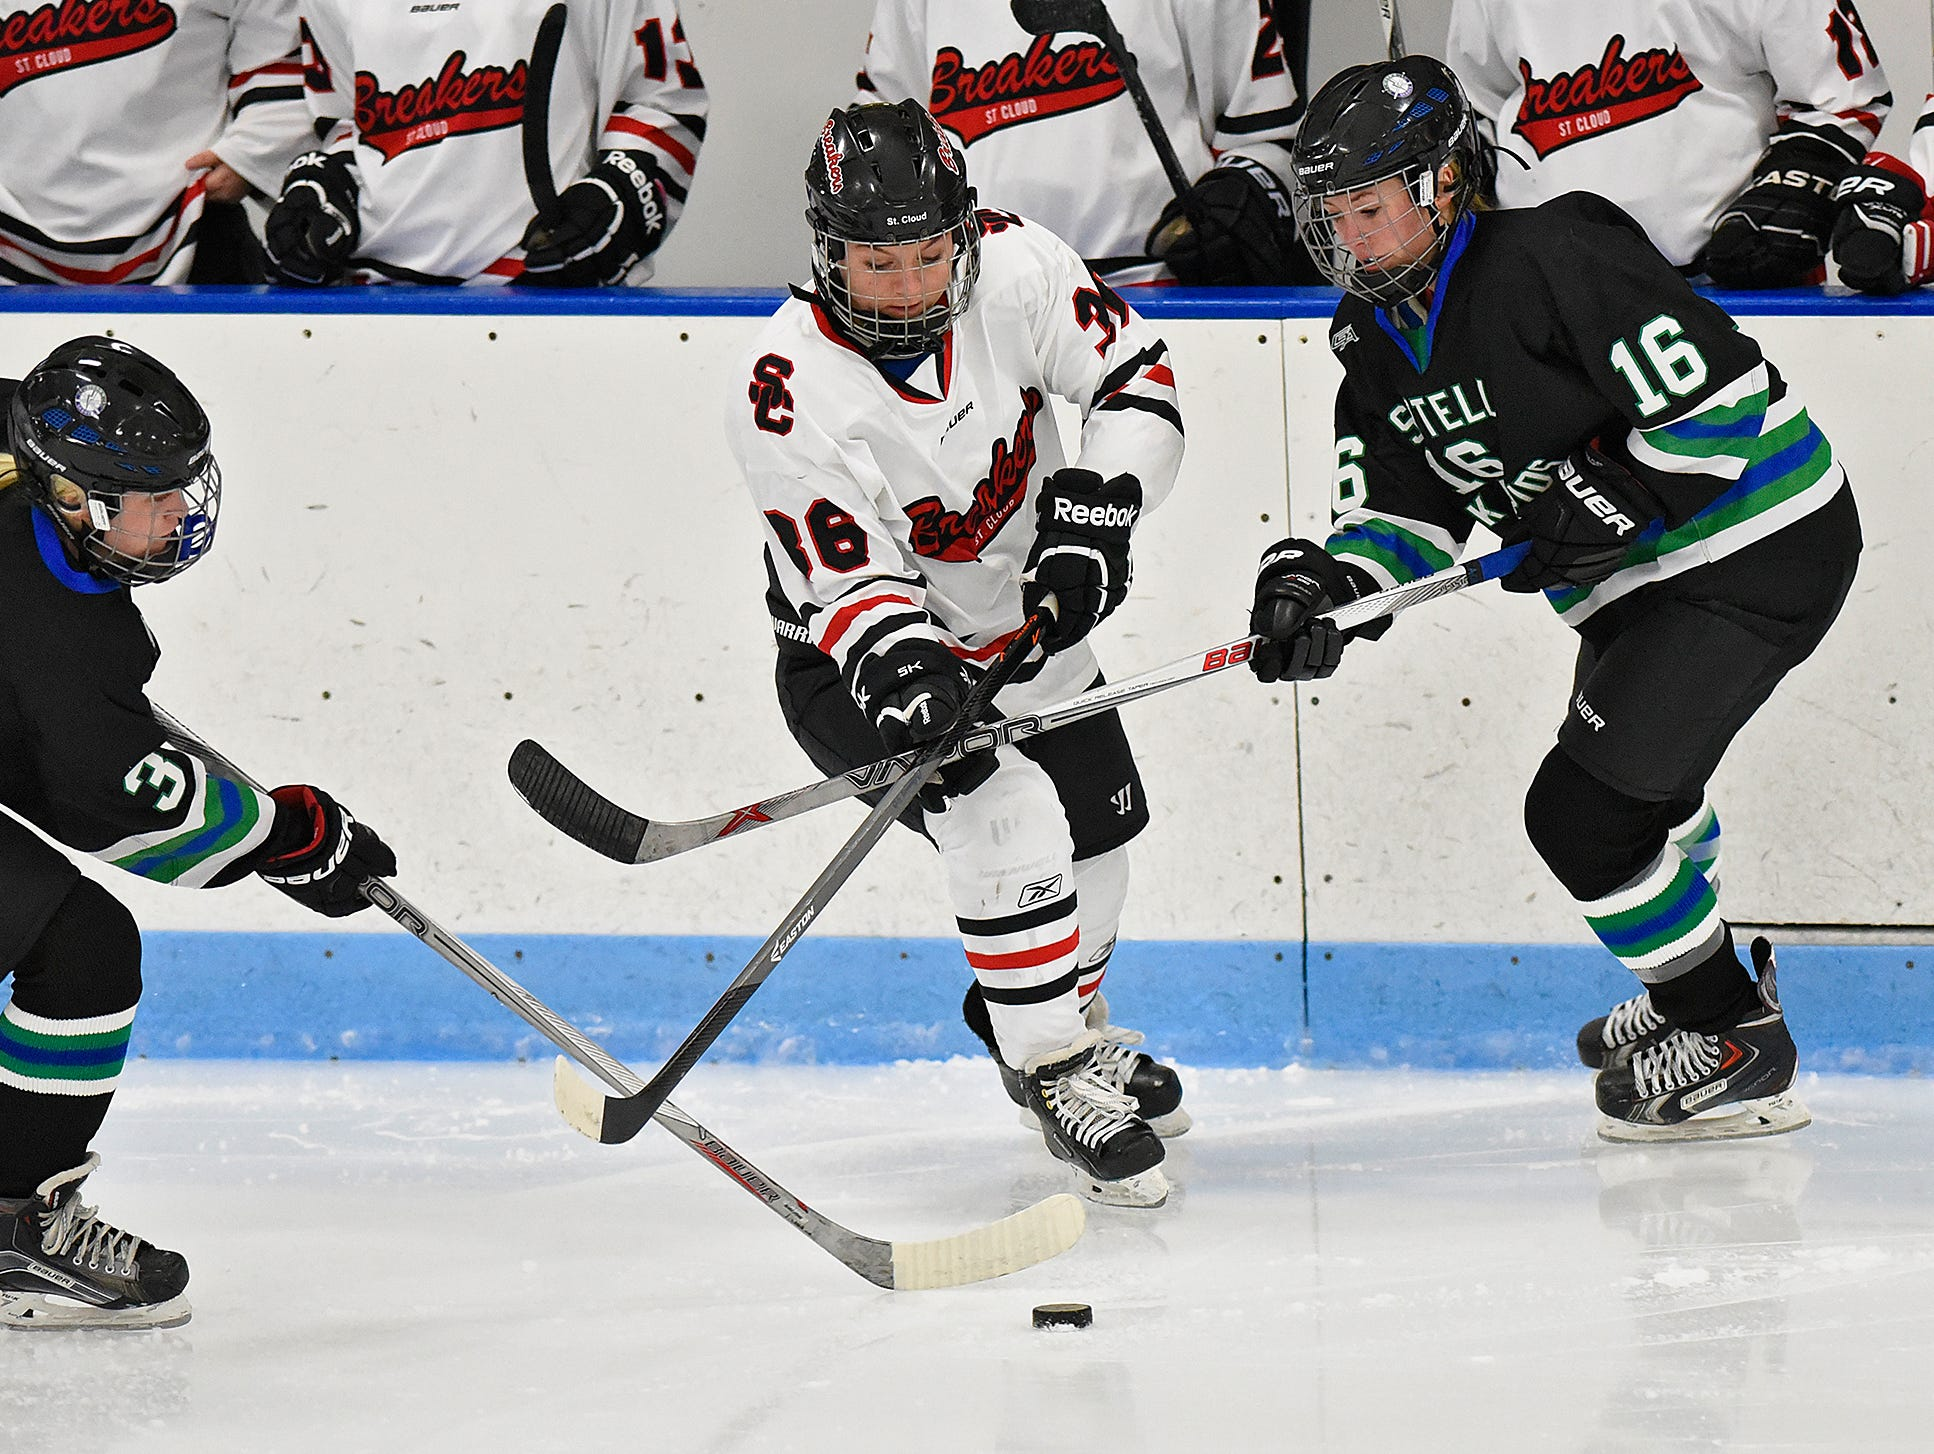 Megan Milroy of the Icebreakers tries to get past Bria Ferns (3) and Bre Hess (16) of the Storm'N Sabres 36 during the first period of Thursday's game at the MAC in St. Cloud.